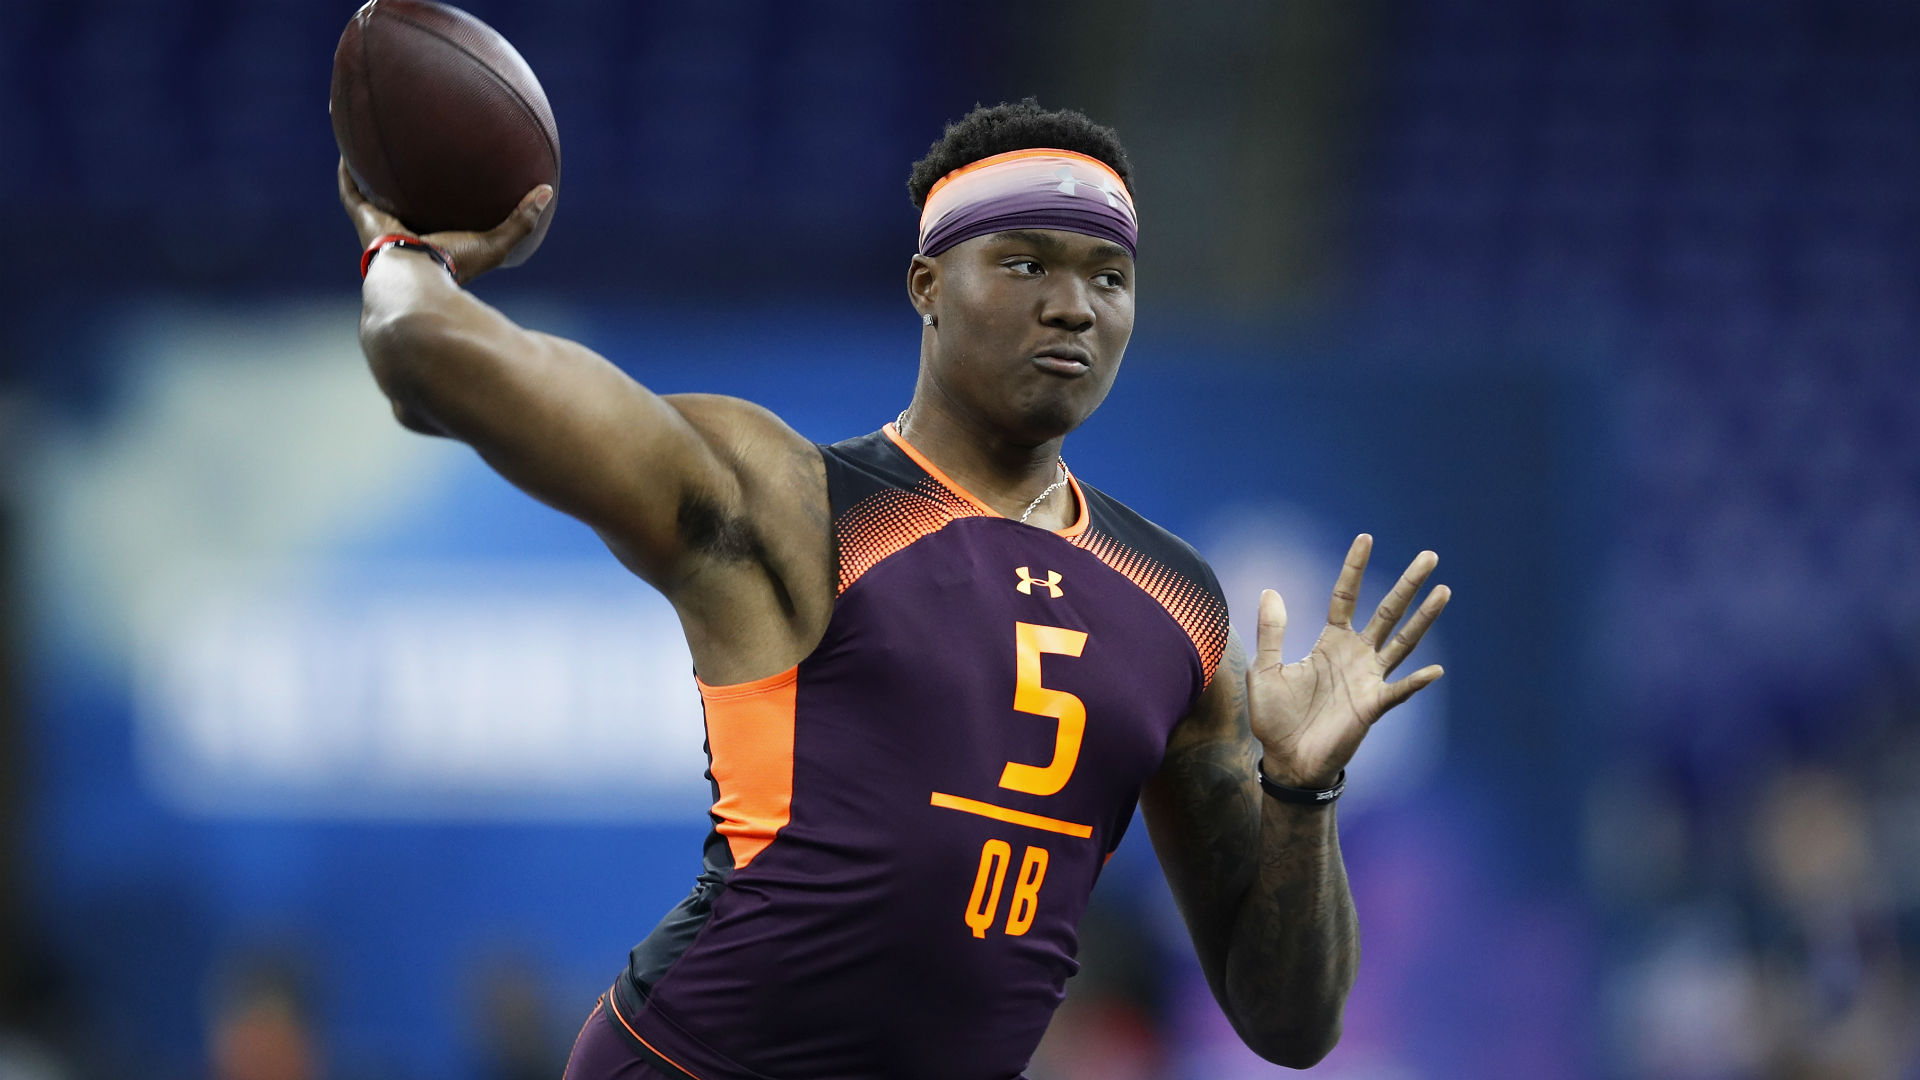 Redskins' Dwayne Haskins is 'for sure' a contender to start at quarterback, Jay Gruden says